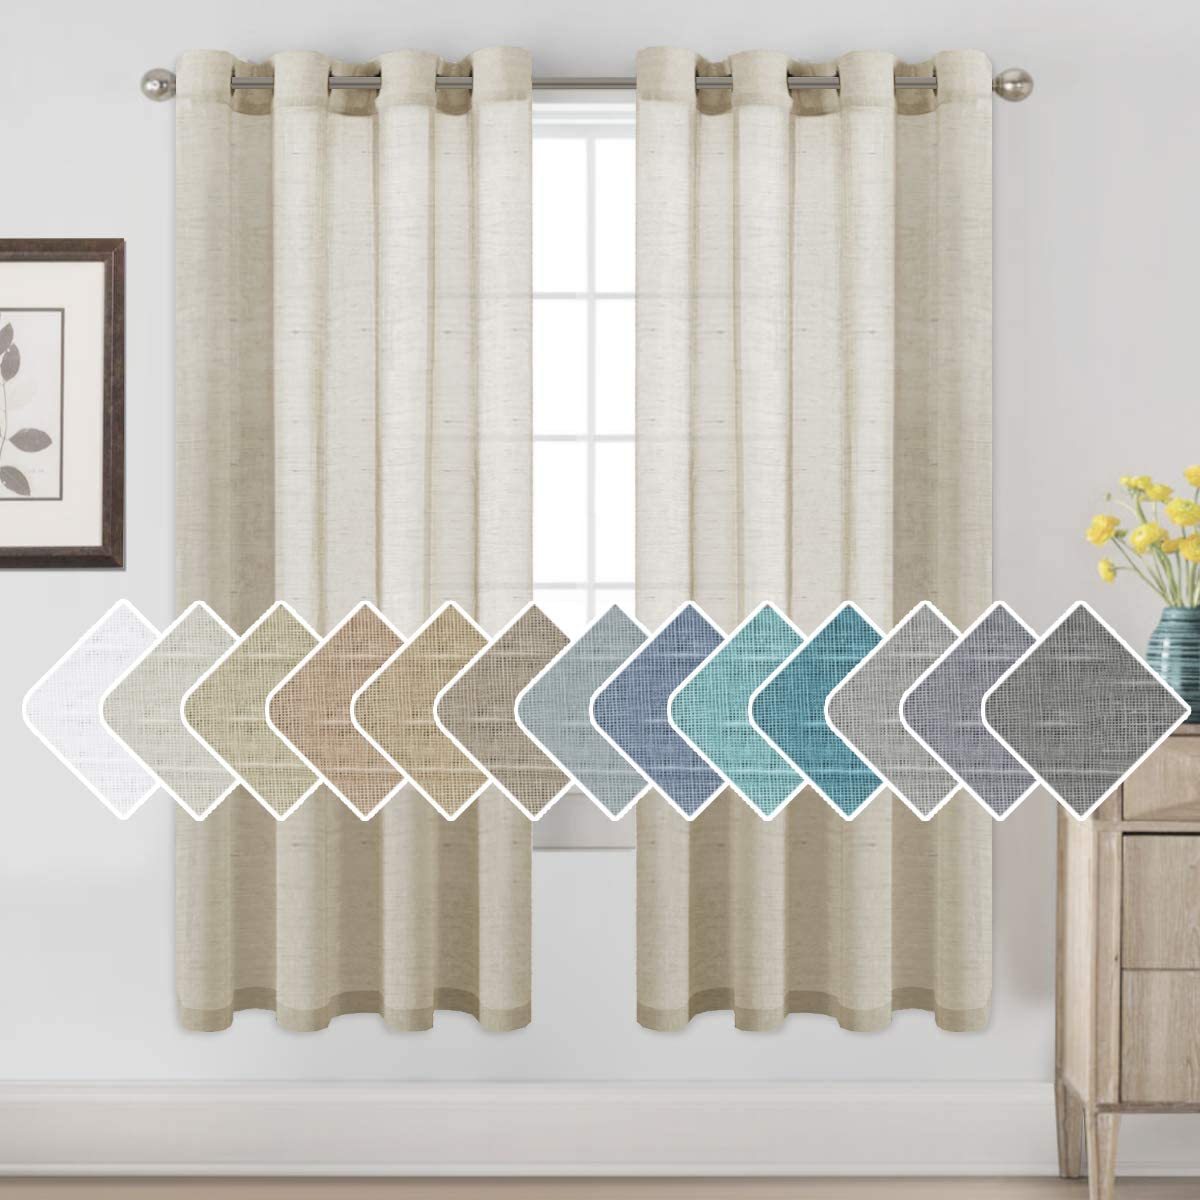 H.VERSAILTEX 72 inch Linen Curtains for Living Room/Home Decorative Rich Natural Linen Sheer Curtains for Bedroom/Laundry - 2 Panels - Elegant Nickel Grommet Top - 52x72 - Inch, Natural